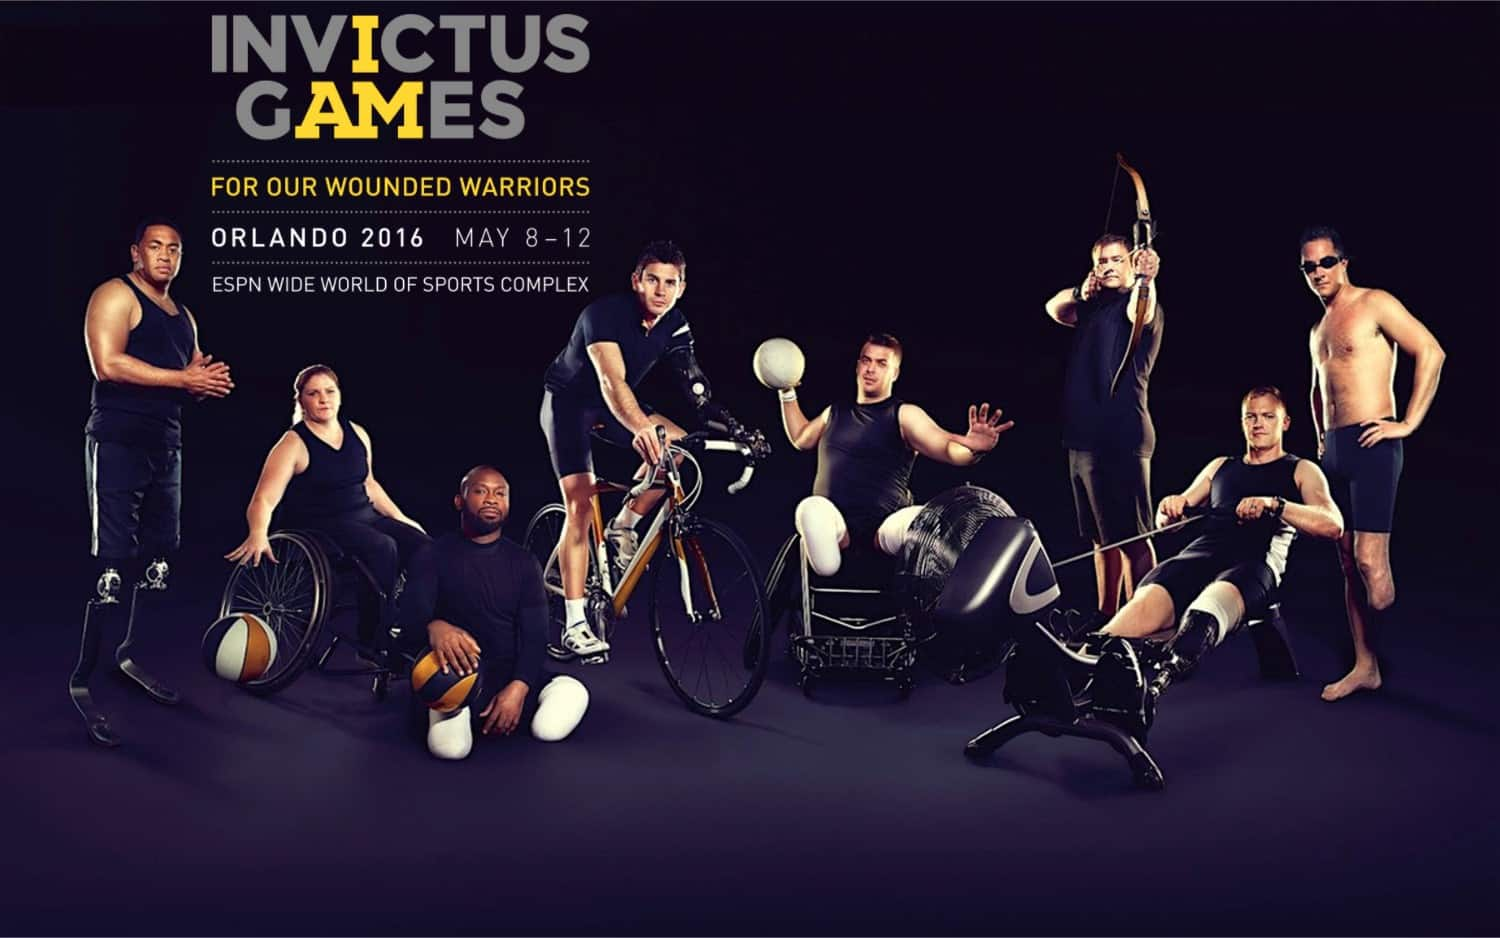 invictus games - photo #23